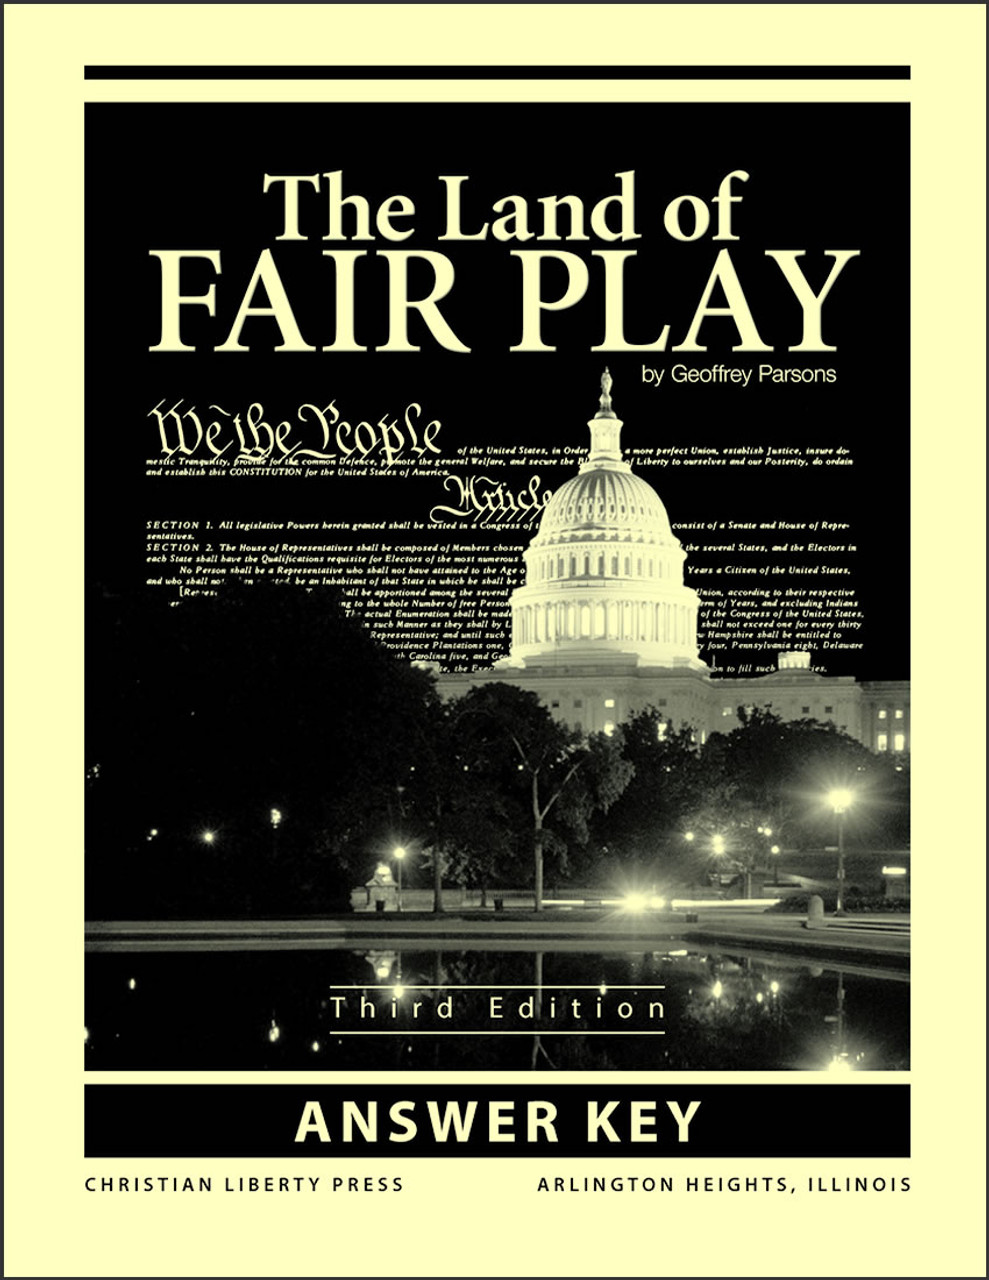 The Land of Fair Play: American Civics from a Christian Perspective, 3rd edition - Answer Key